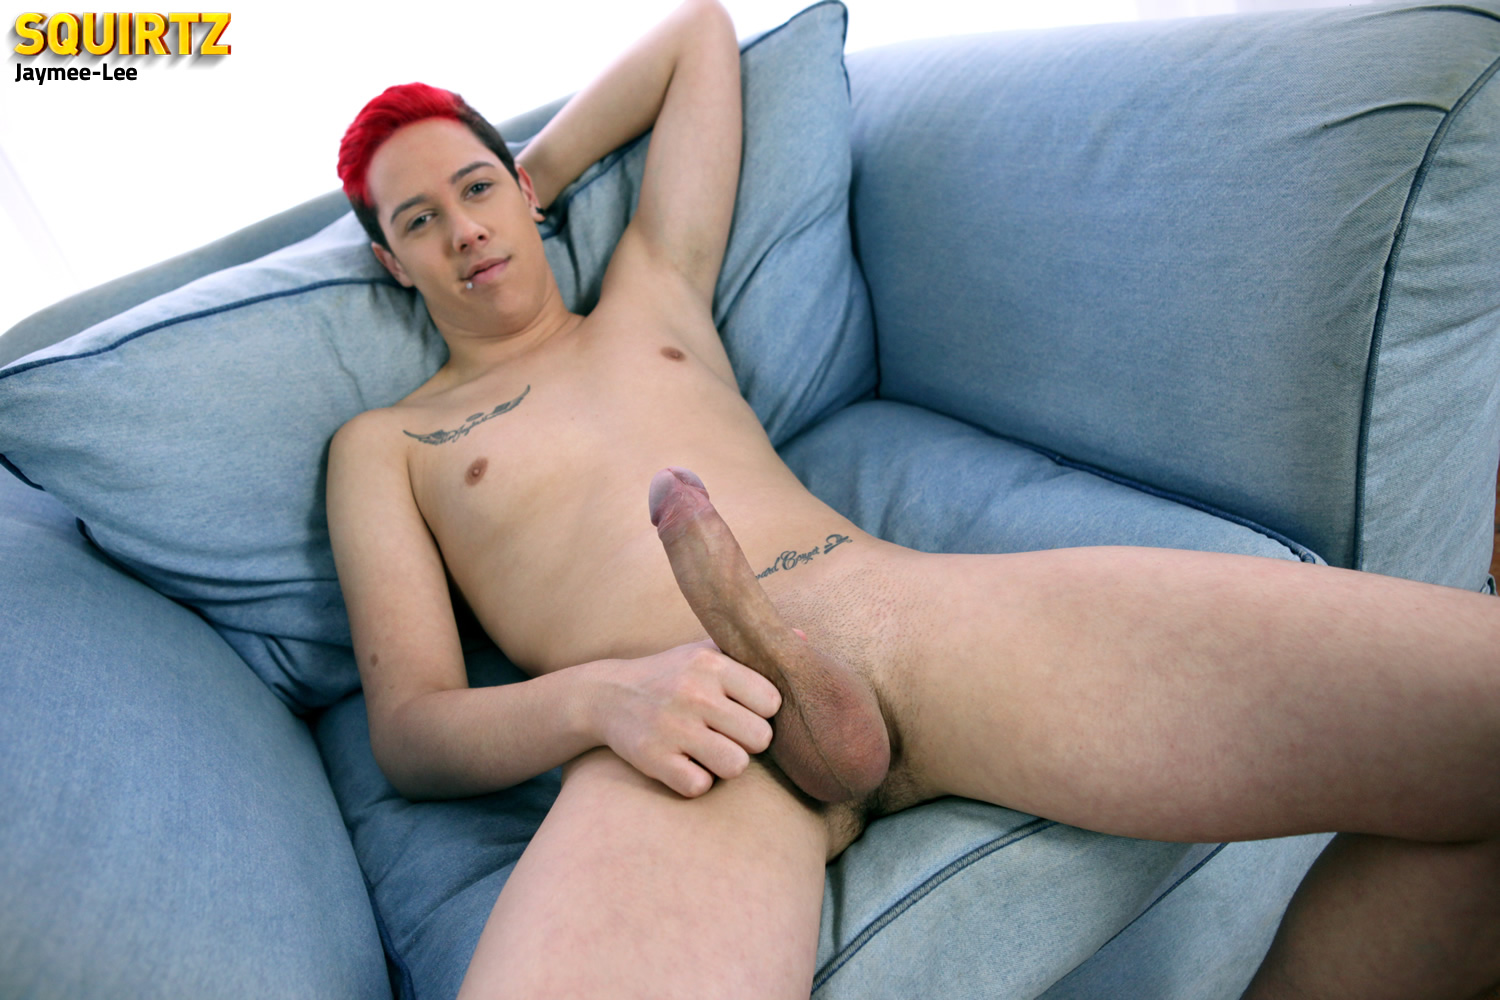 Squirtz-Jaymee-Lee-Twink-Jerking-Off-Massive-Uncut-Cock-Amateur-Gay-Porn-06 Amateur Florida Twink Jaymee-Lee Jerking His Massive Uncut Cock